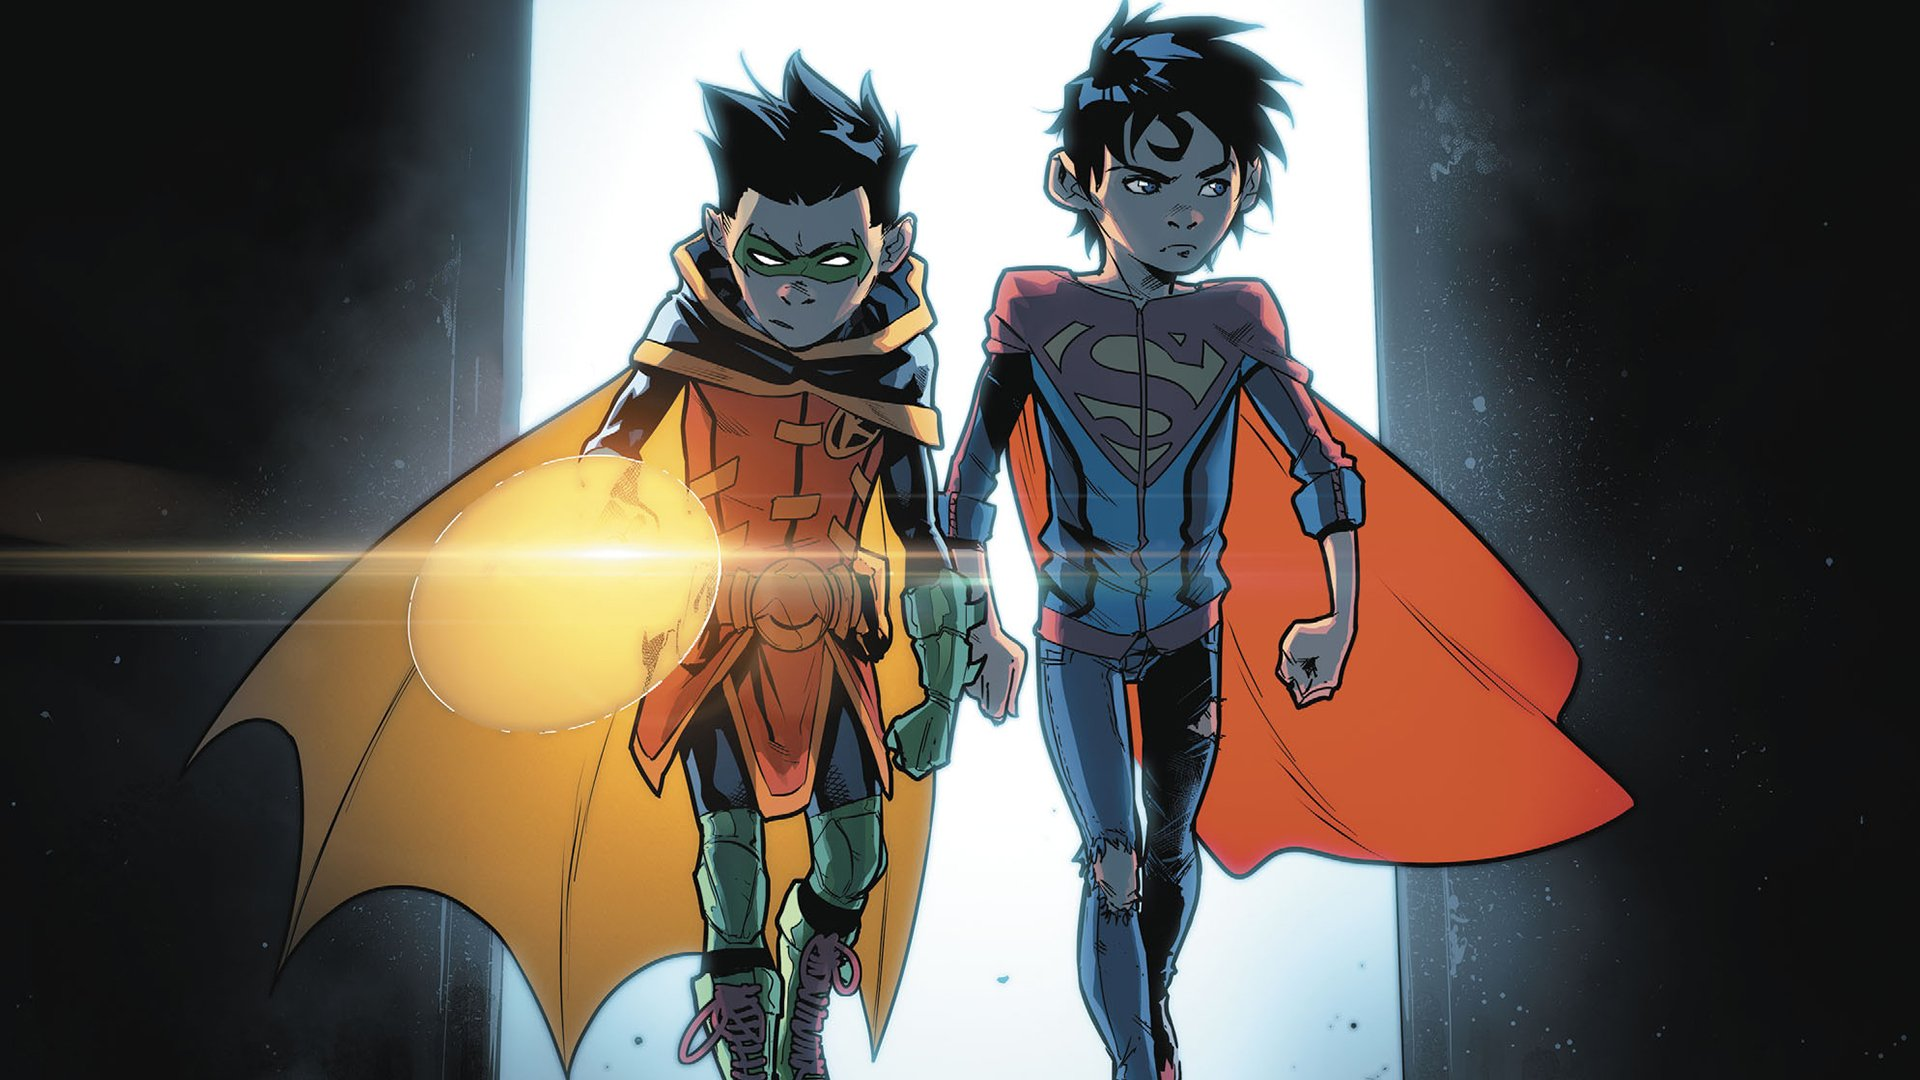 Superman Hd Wallpaper For Iphone 5 Robin And Superboy Hd Wallpaper Background Image